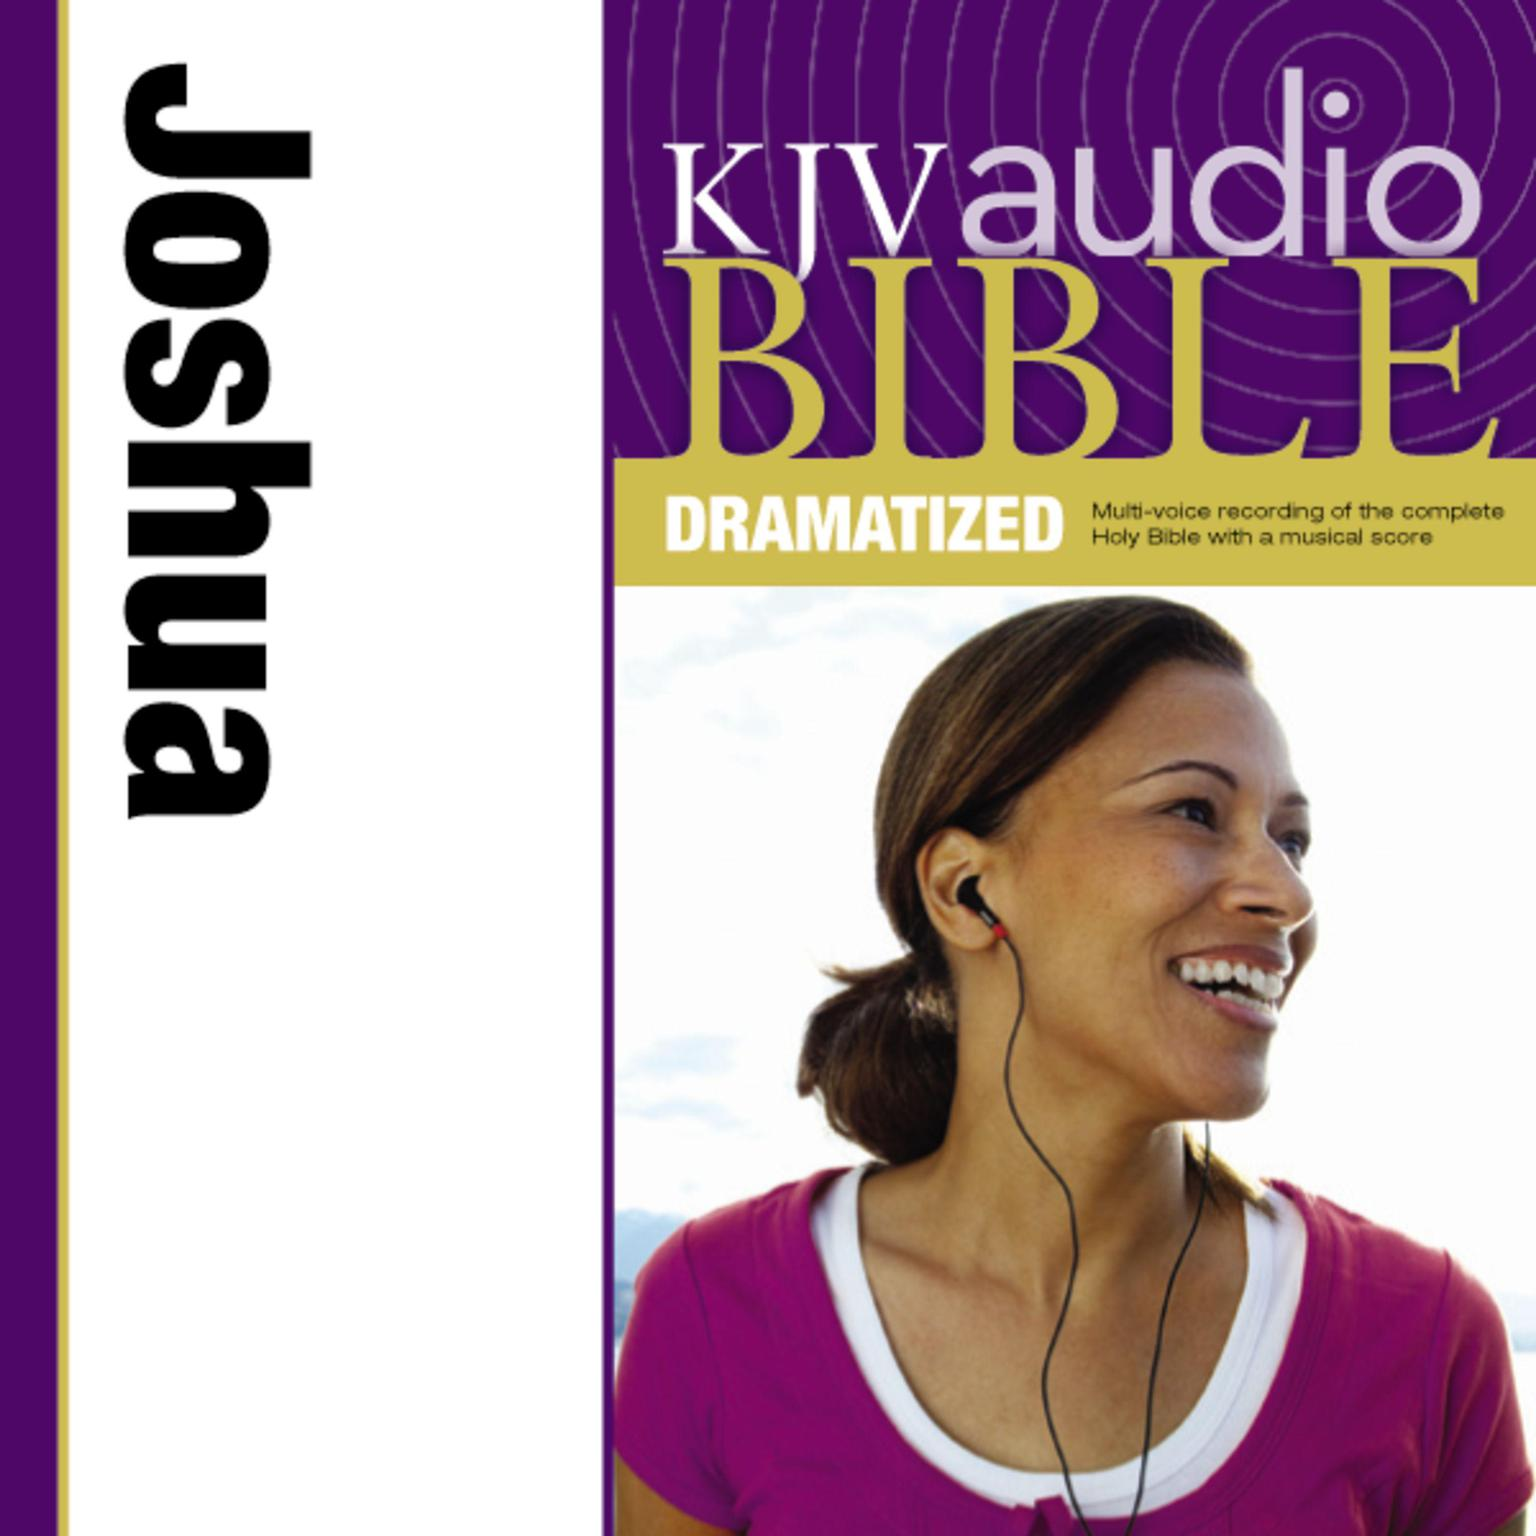 Printable KJV, Audio Bible, Dramatized: Joshua, Audio Download Audiobook Cover Art